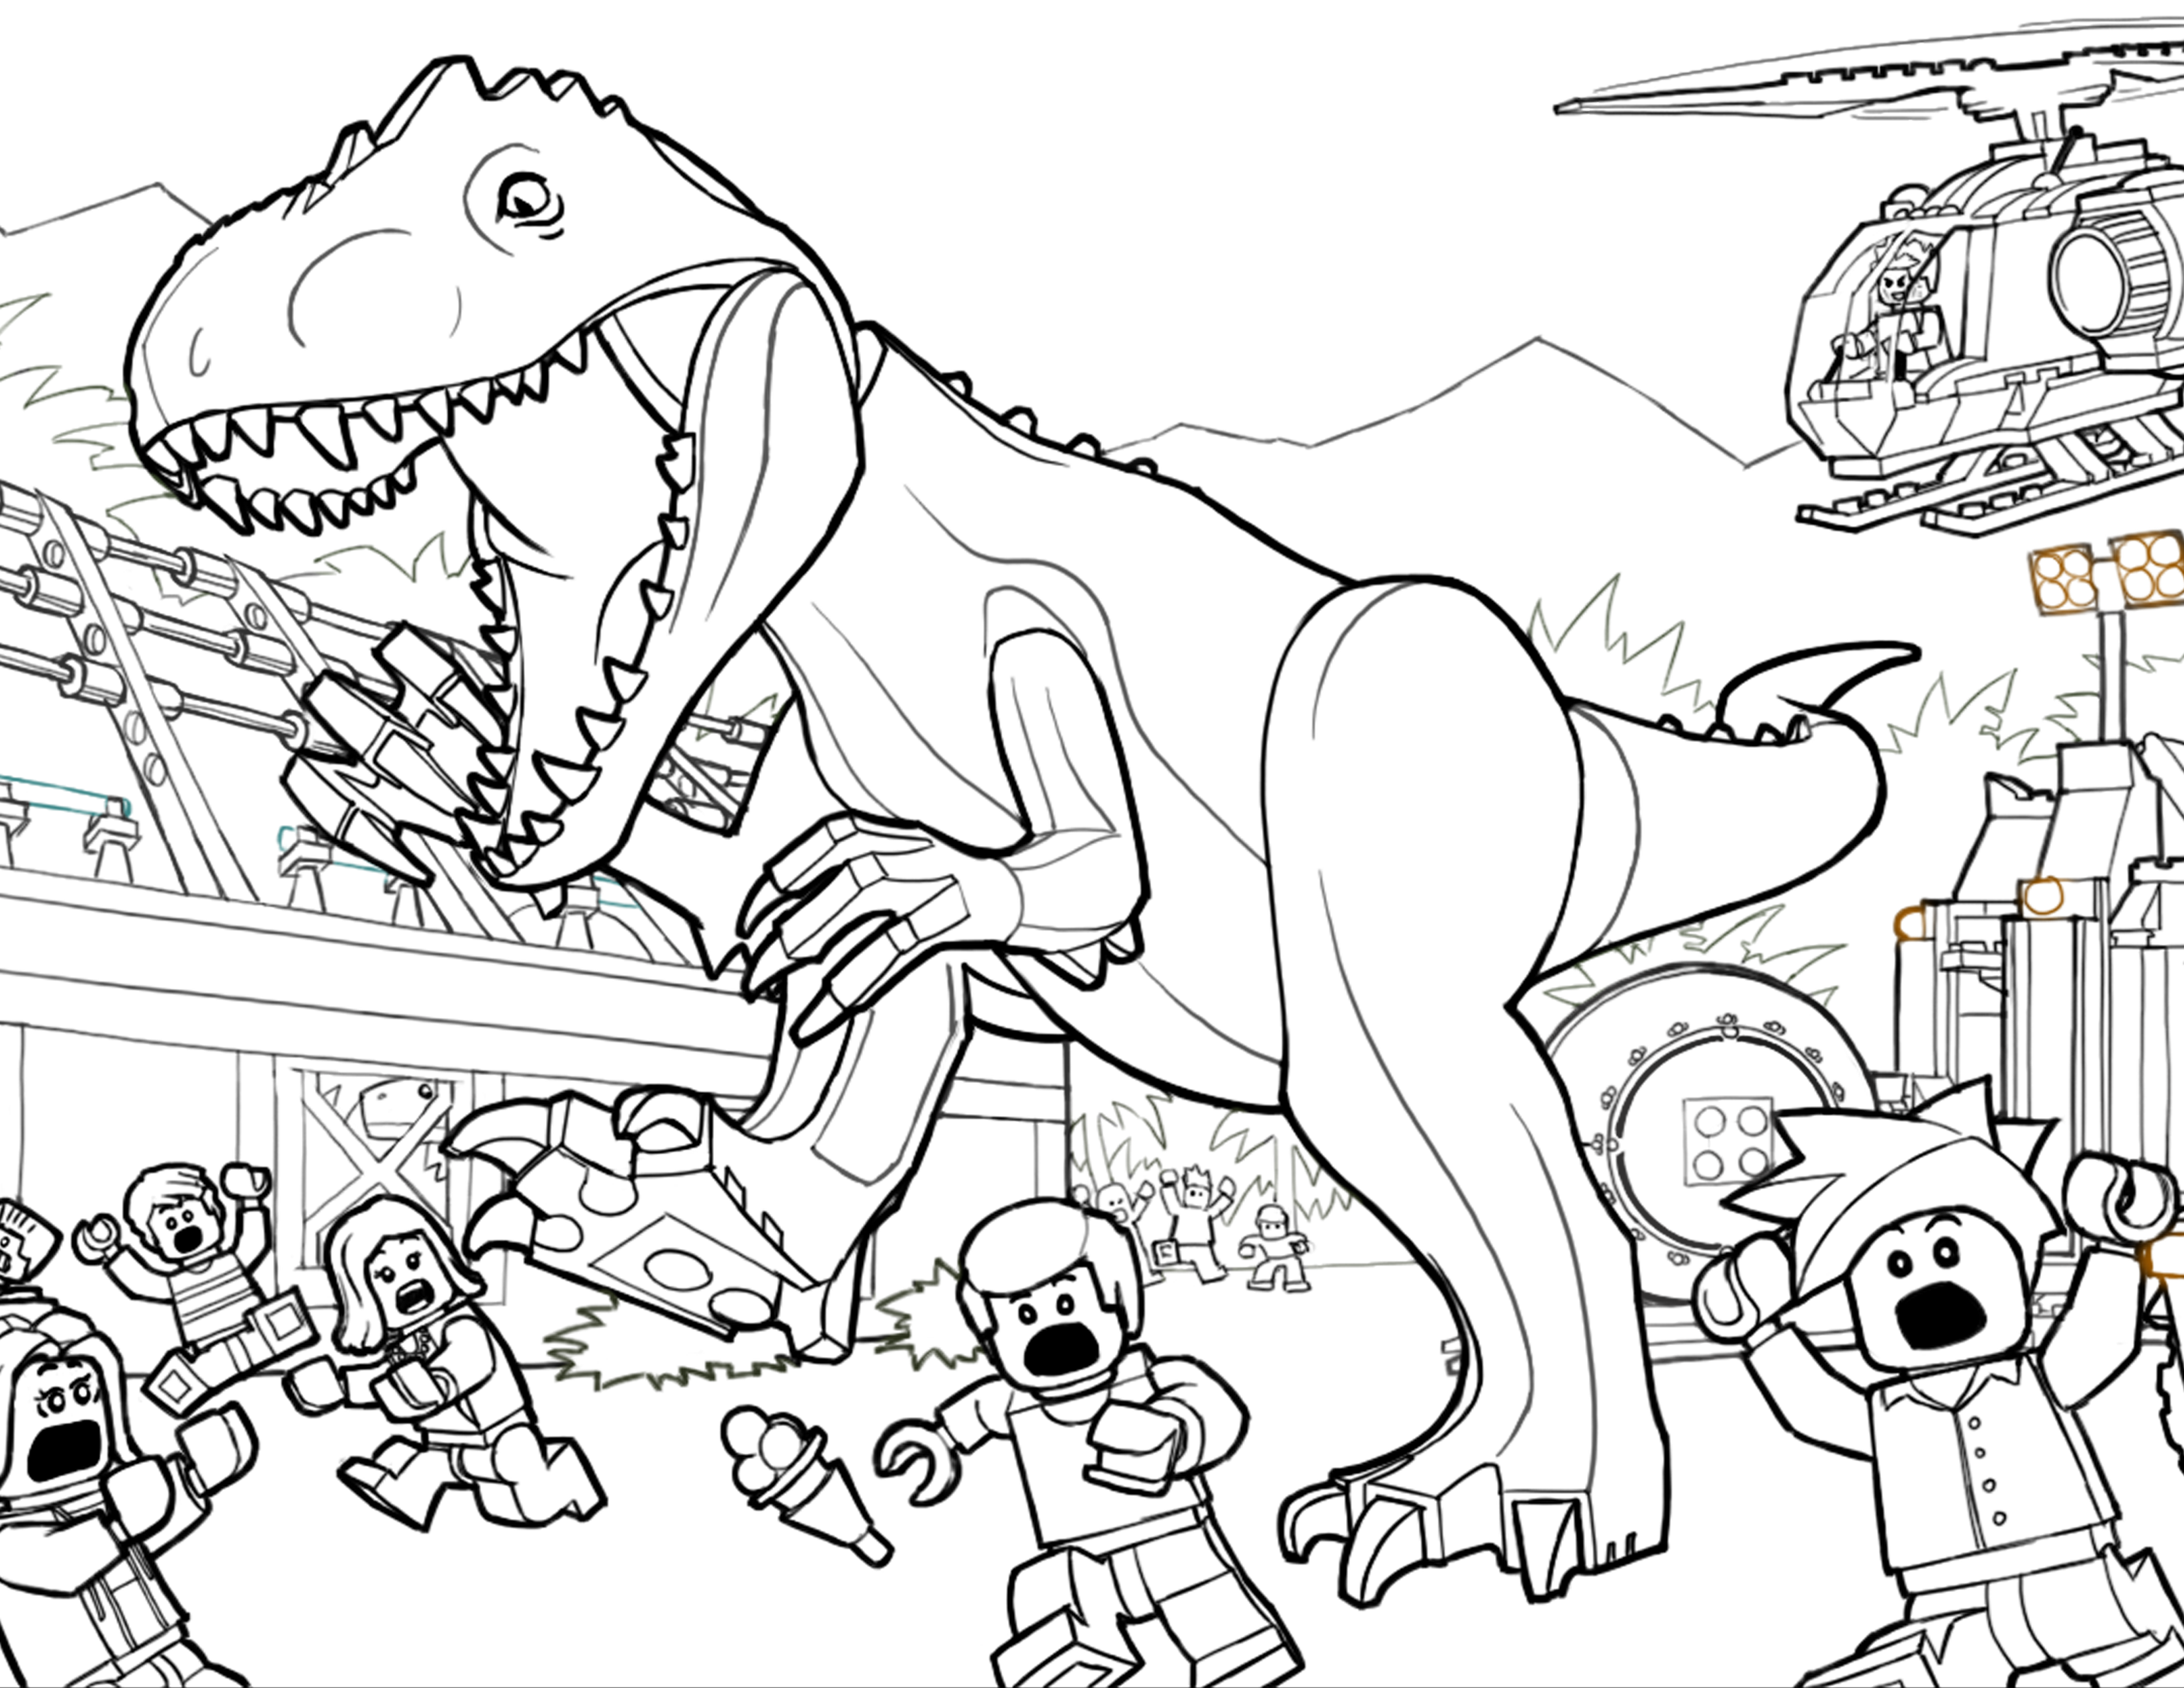 500 Top Coloring Pages Of Lego Dinosaurs Pictures